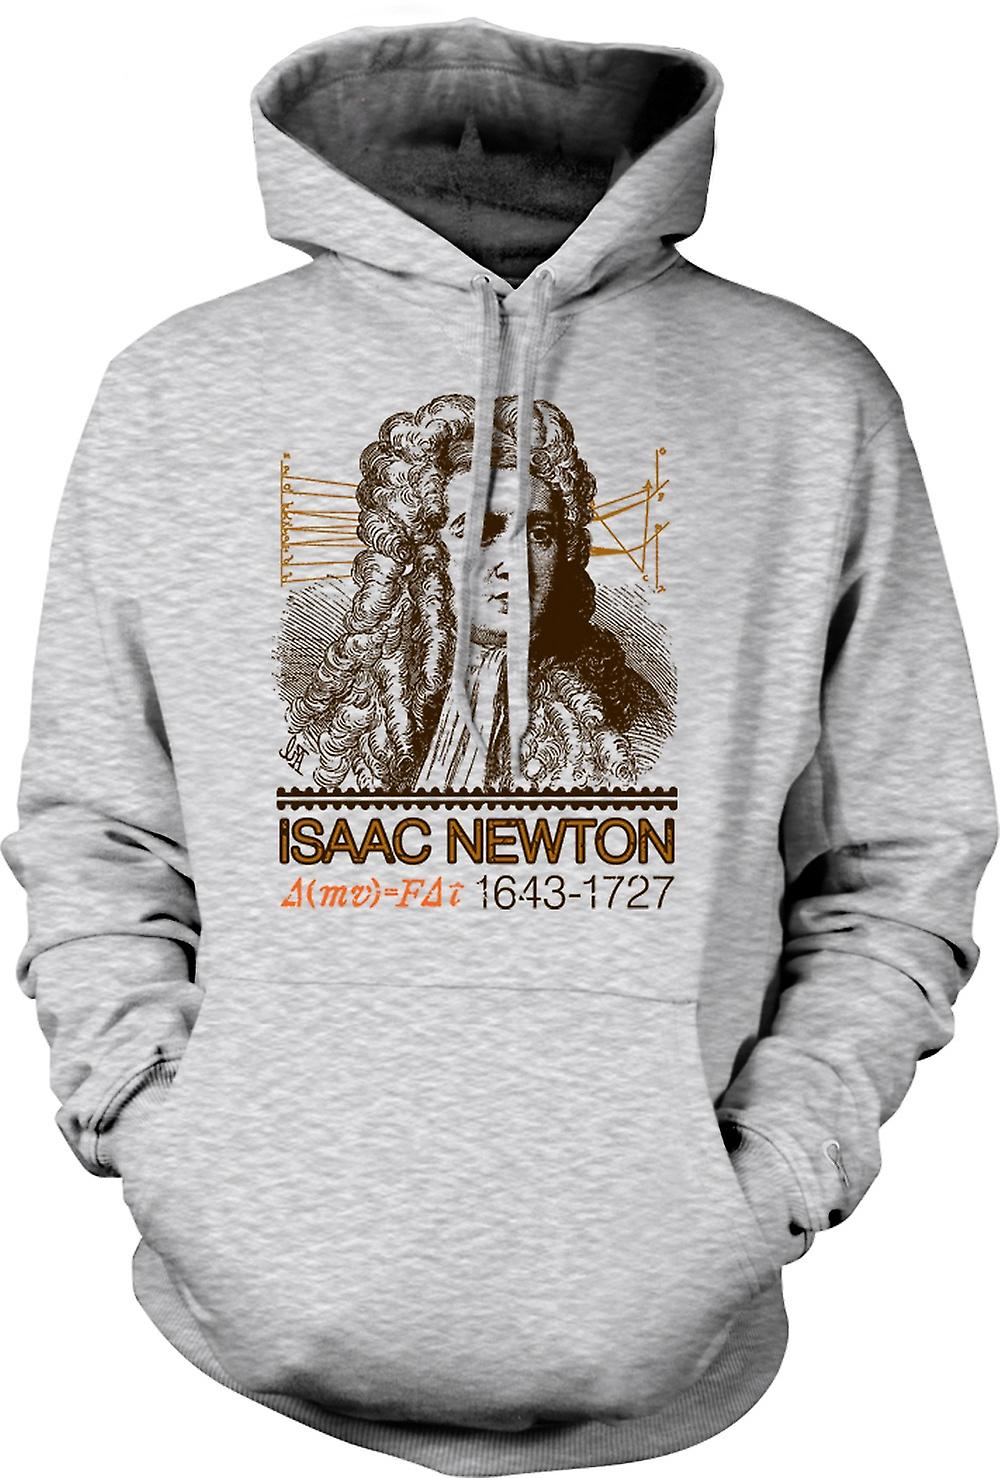 Mens Hoodie - Isaac Newton Scientist 1643 - 1727 - Icon